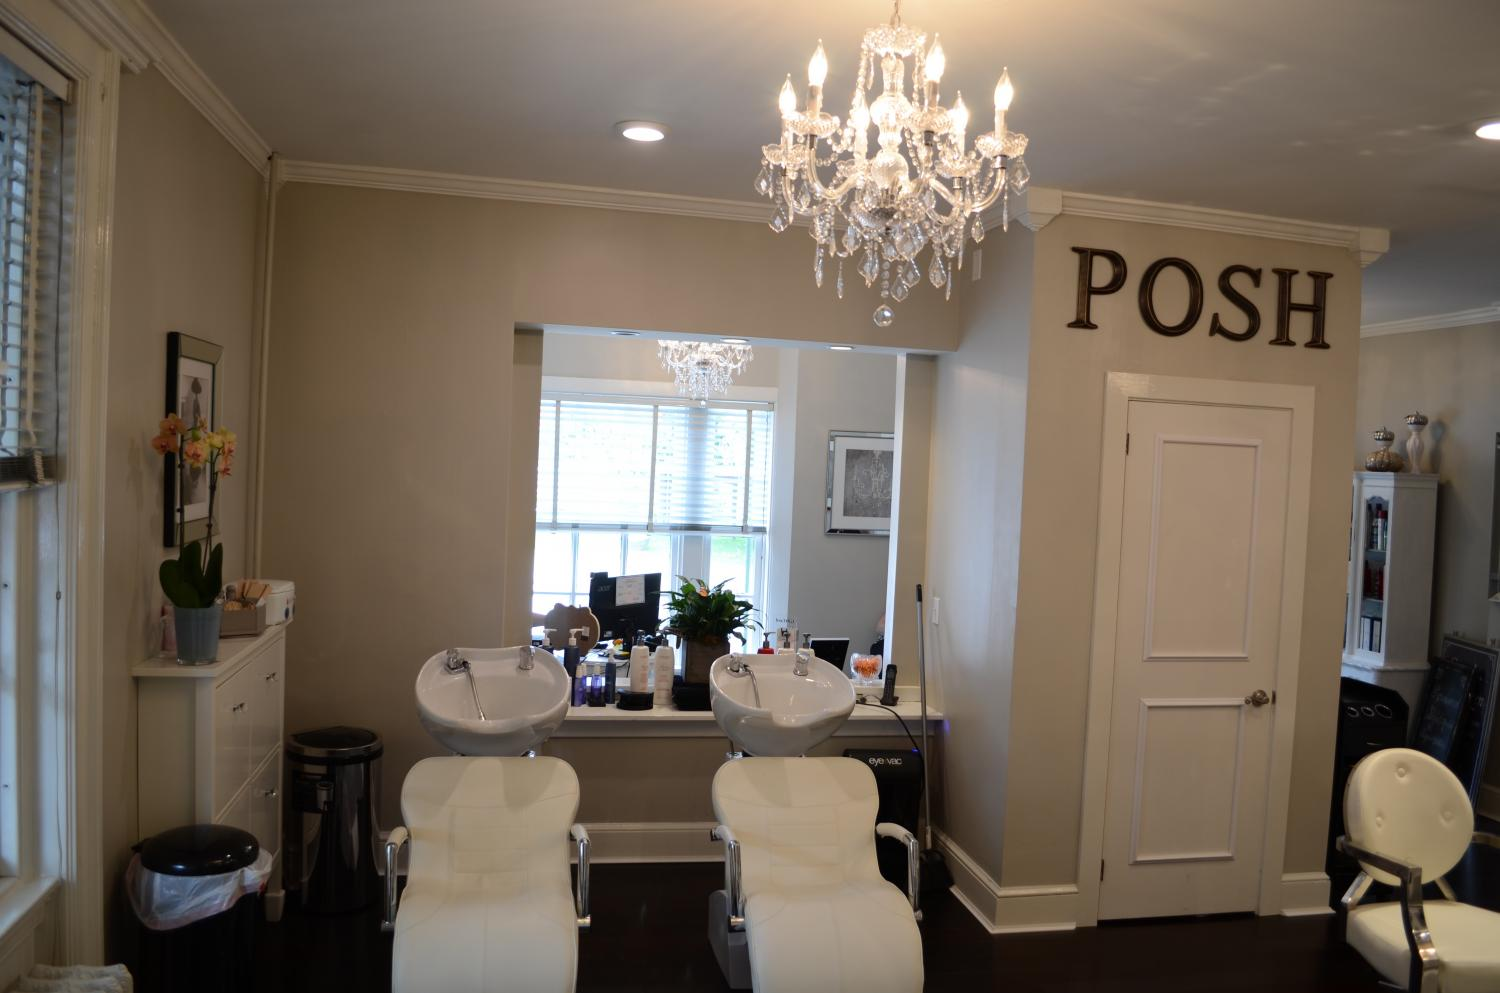 About salon posh for 221 post a salon